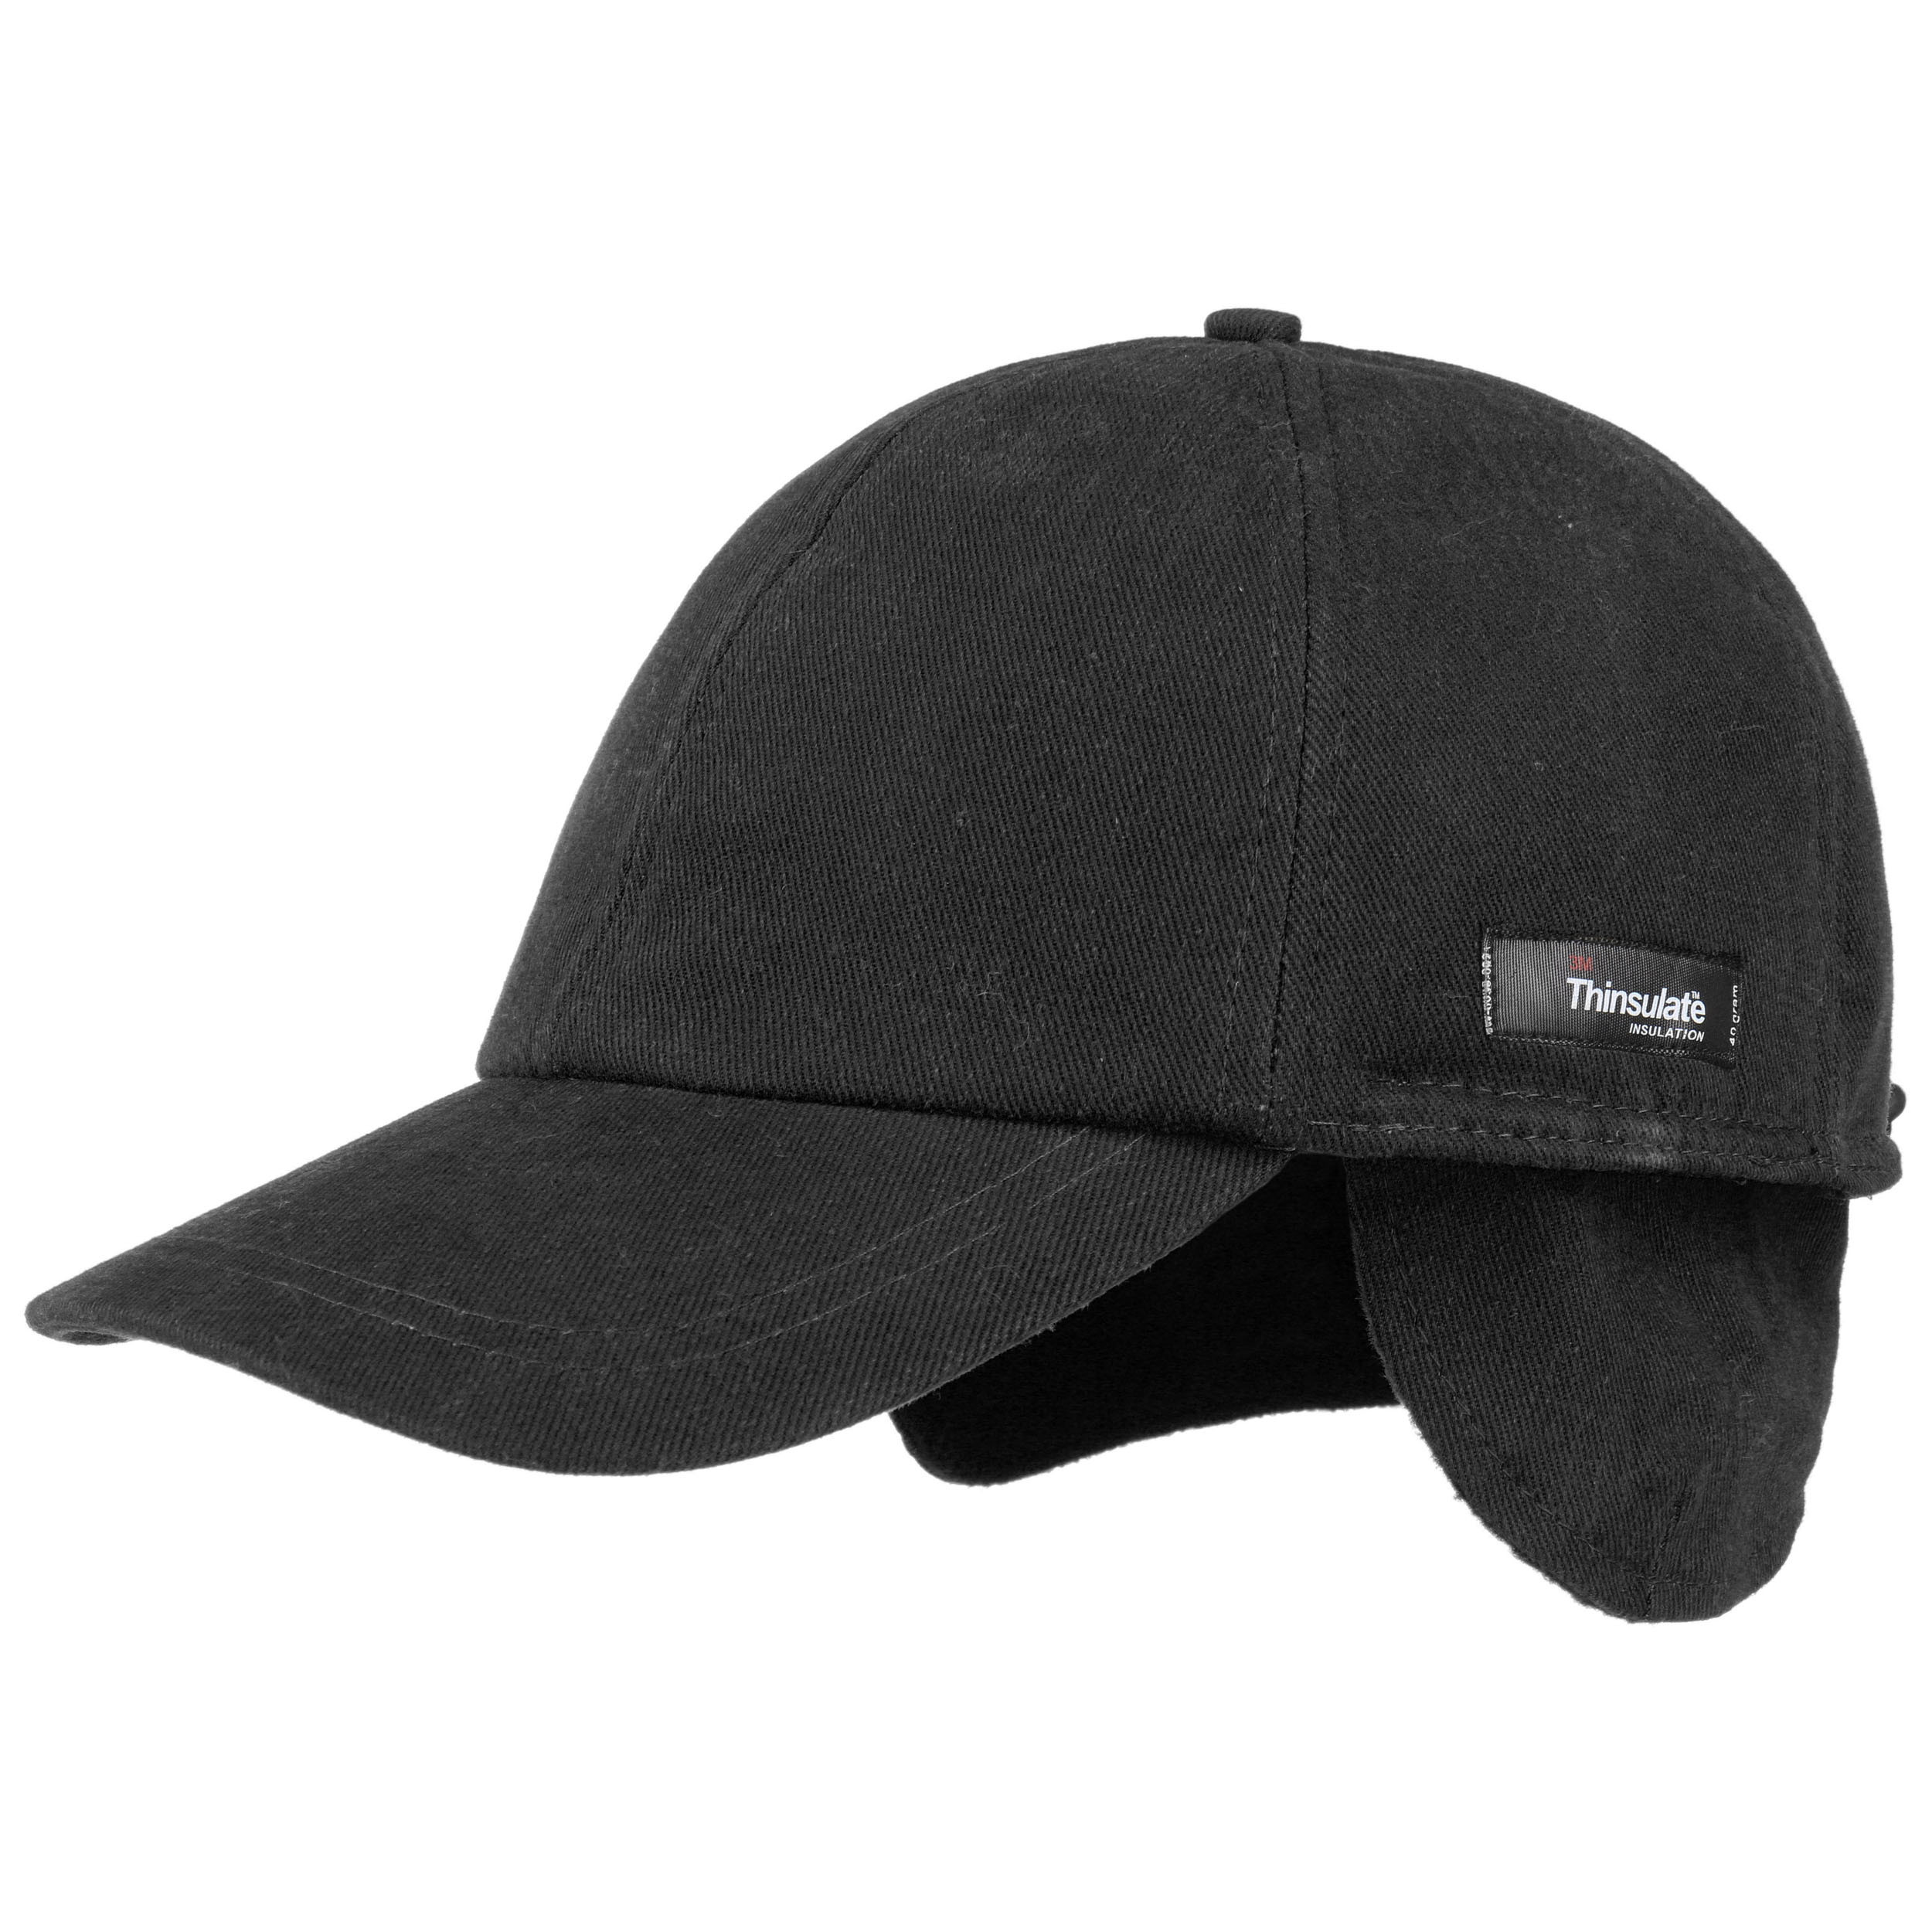 Hat with Ear Flaps Inspirational Thinsulate Cap with Ear Flaps by LiPodo Eur 24 95 Of Top 42 Photos Hat with Ear Flaps